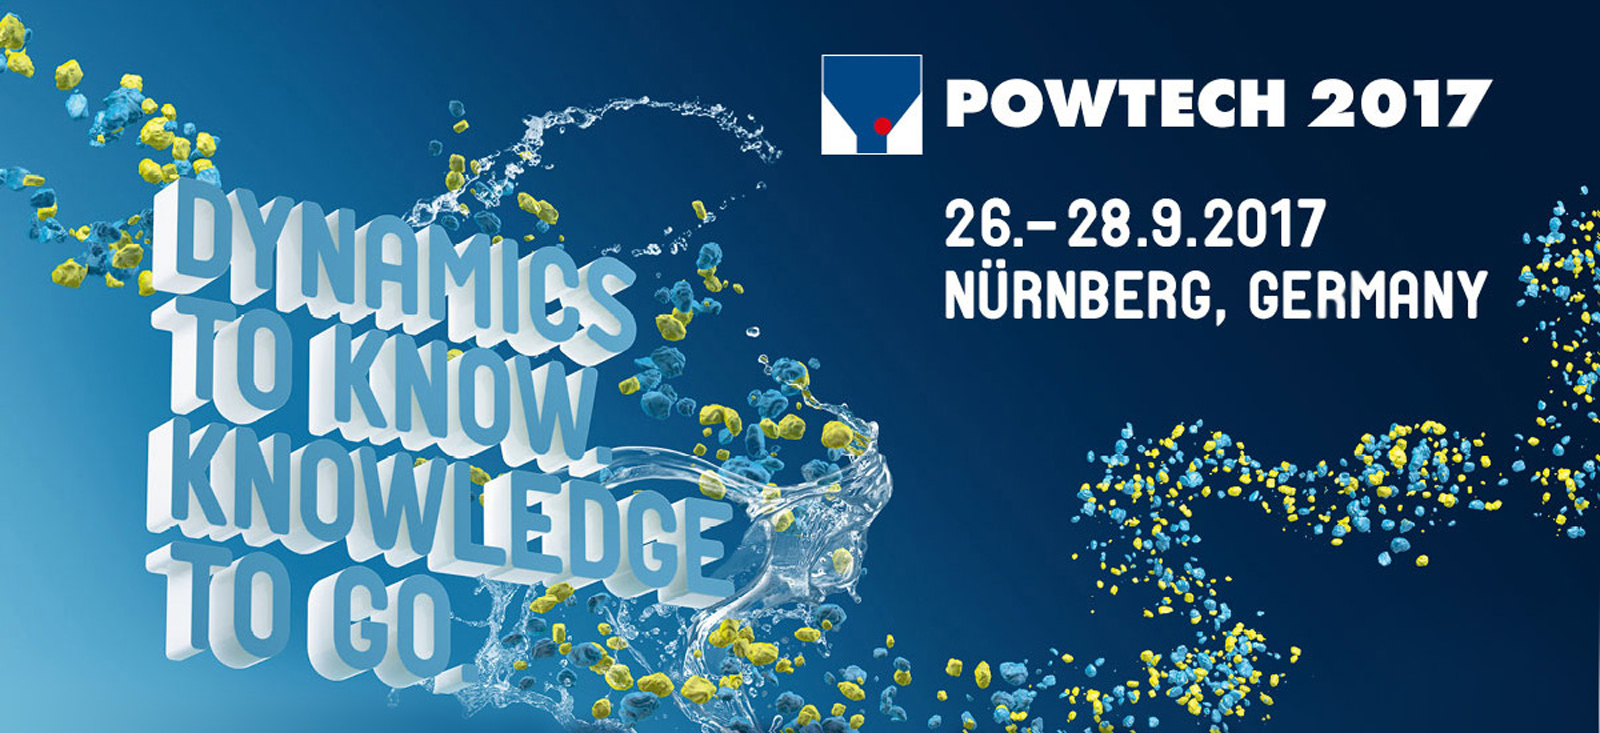 20th POWTECH in Nuremberg – celebrate with us